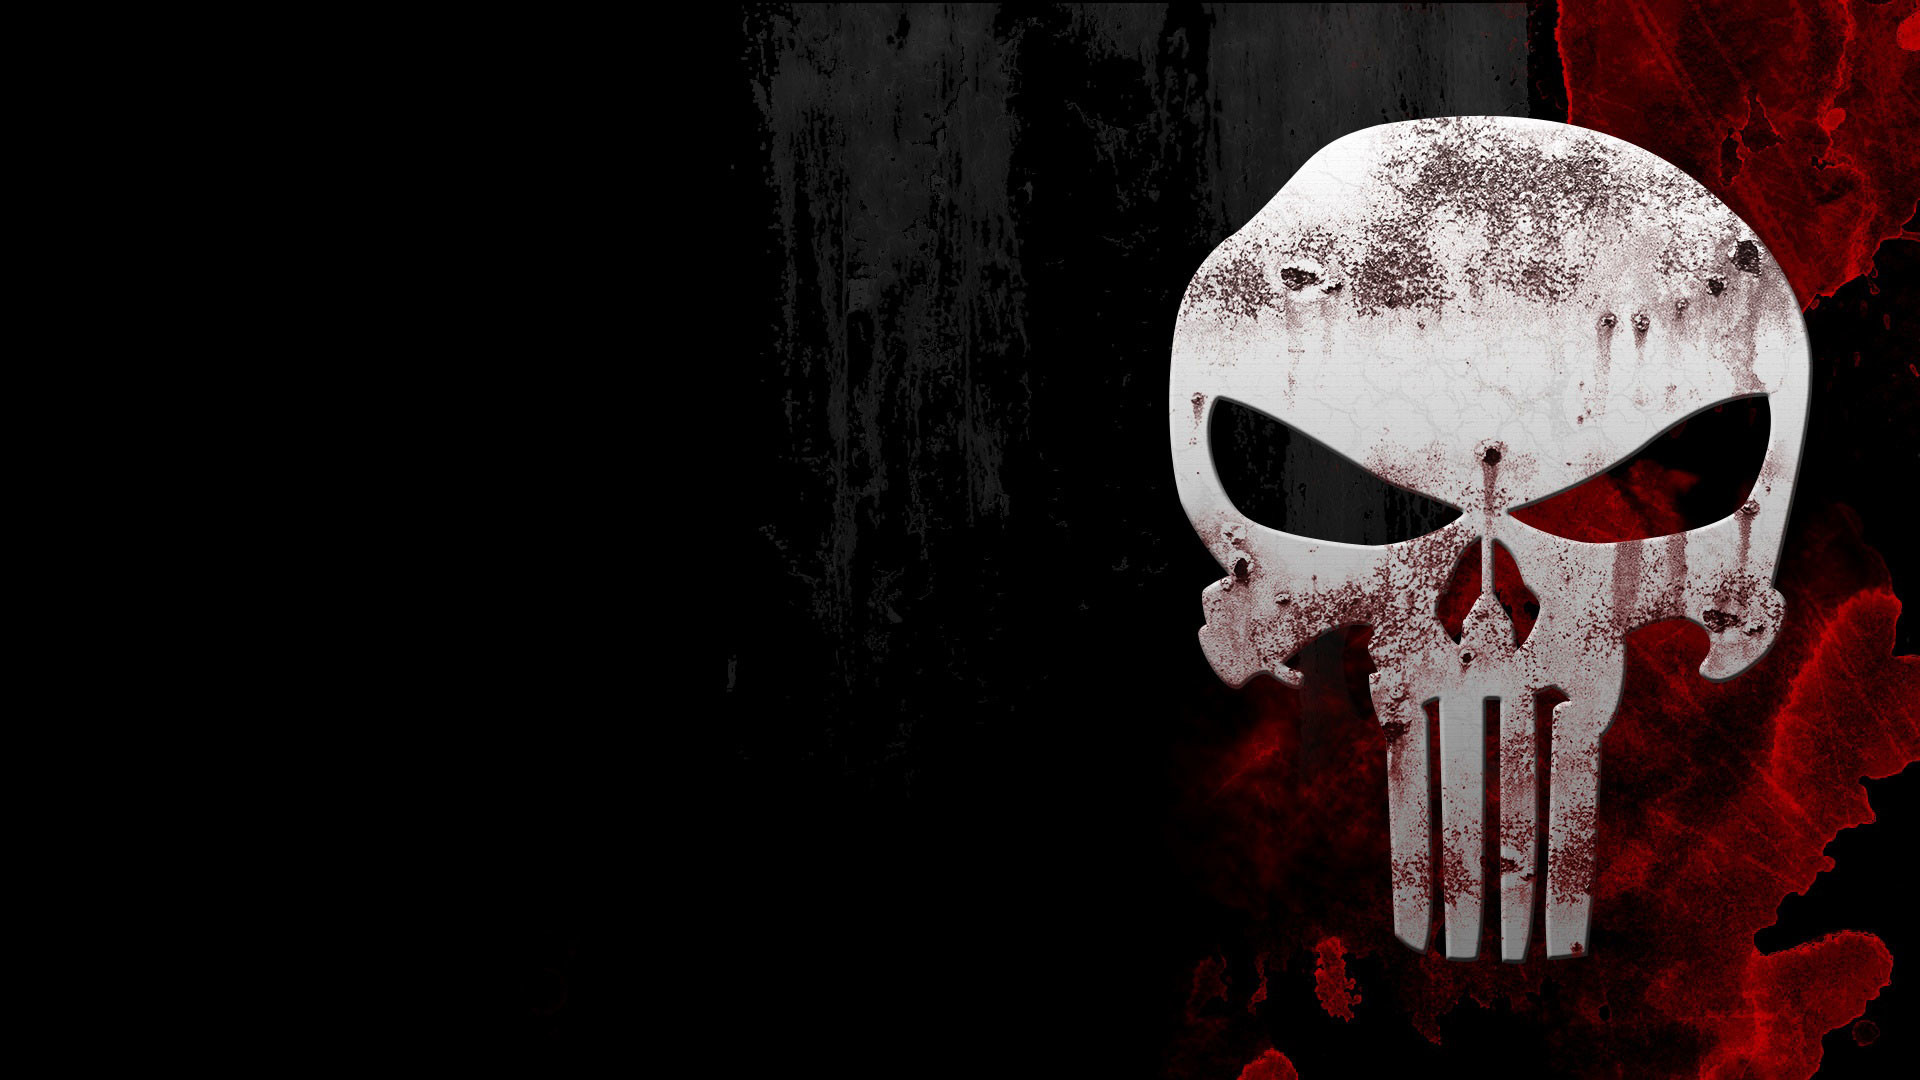 hd pics photos attractive skull danger logo stunning nice awesome hd  quality desktop background wallpaper